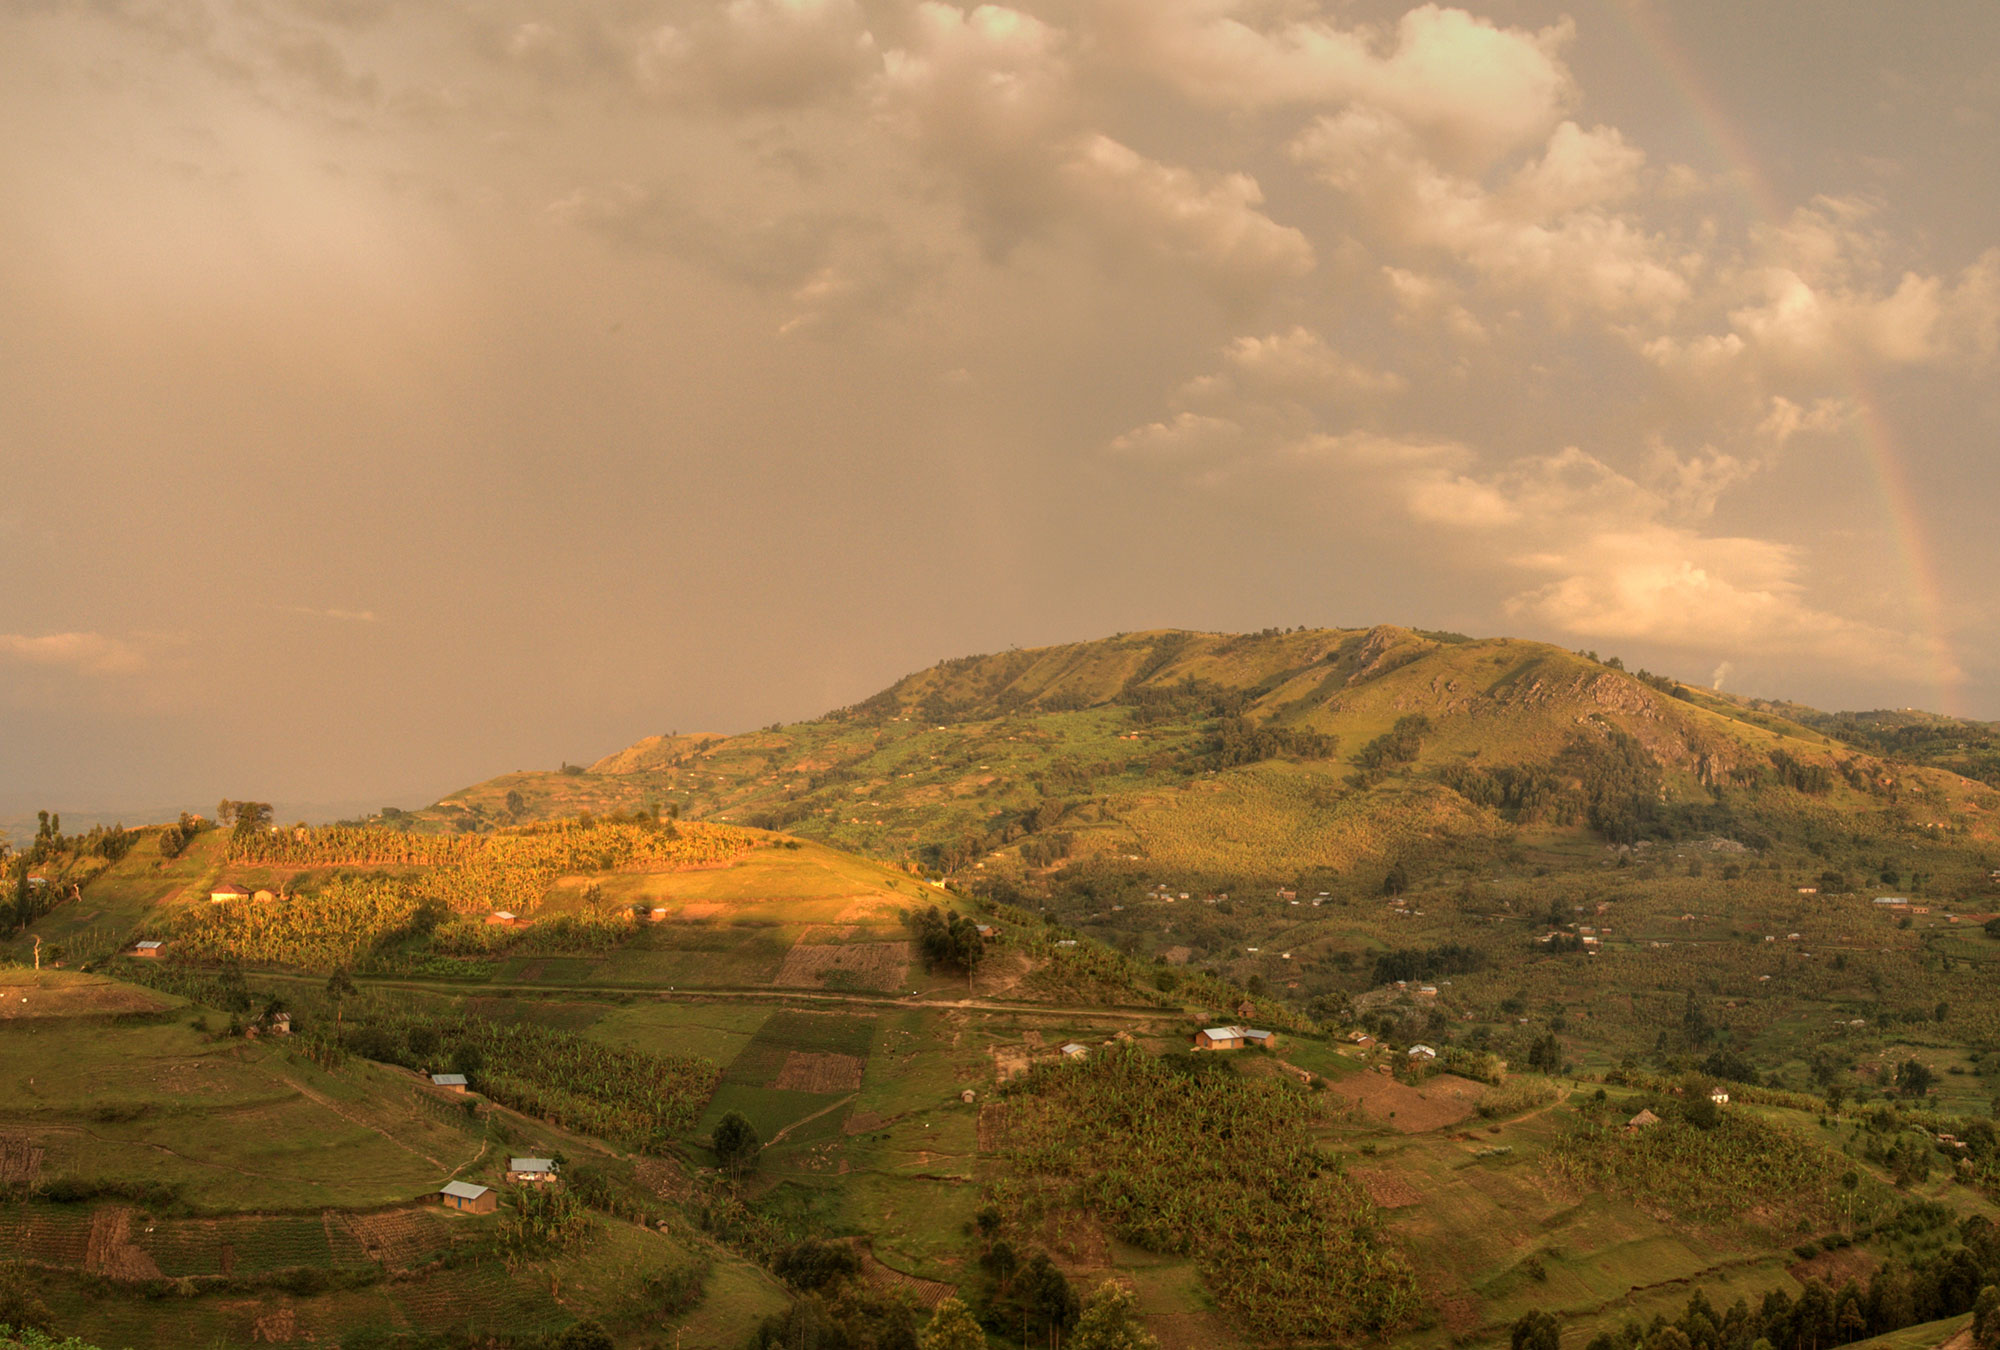 A sloping landscape in western Uganda